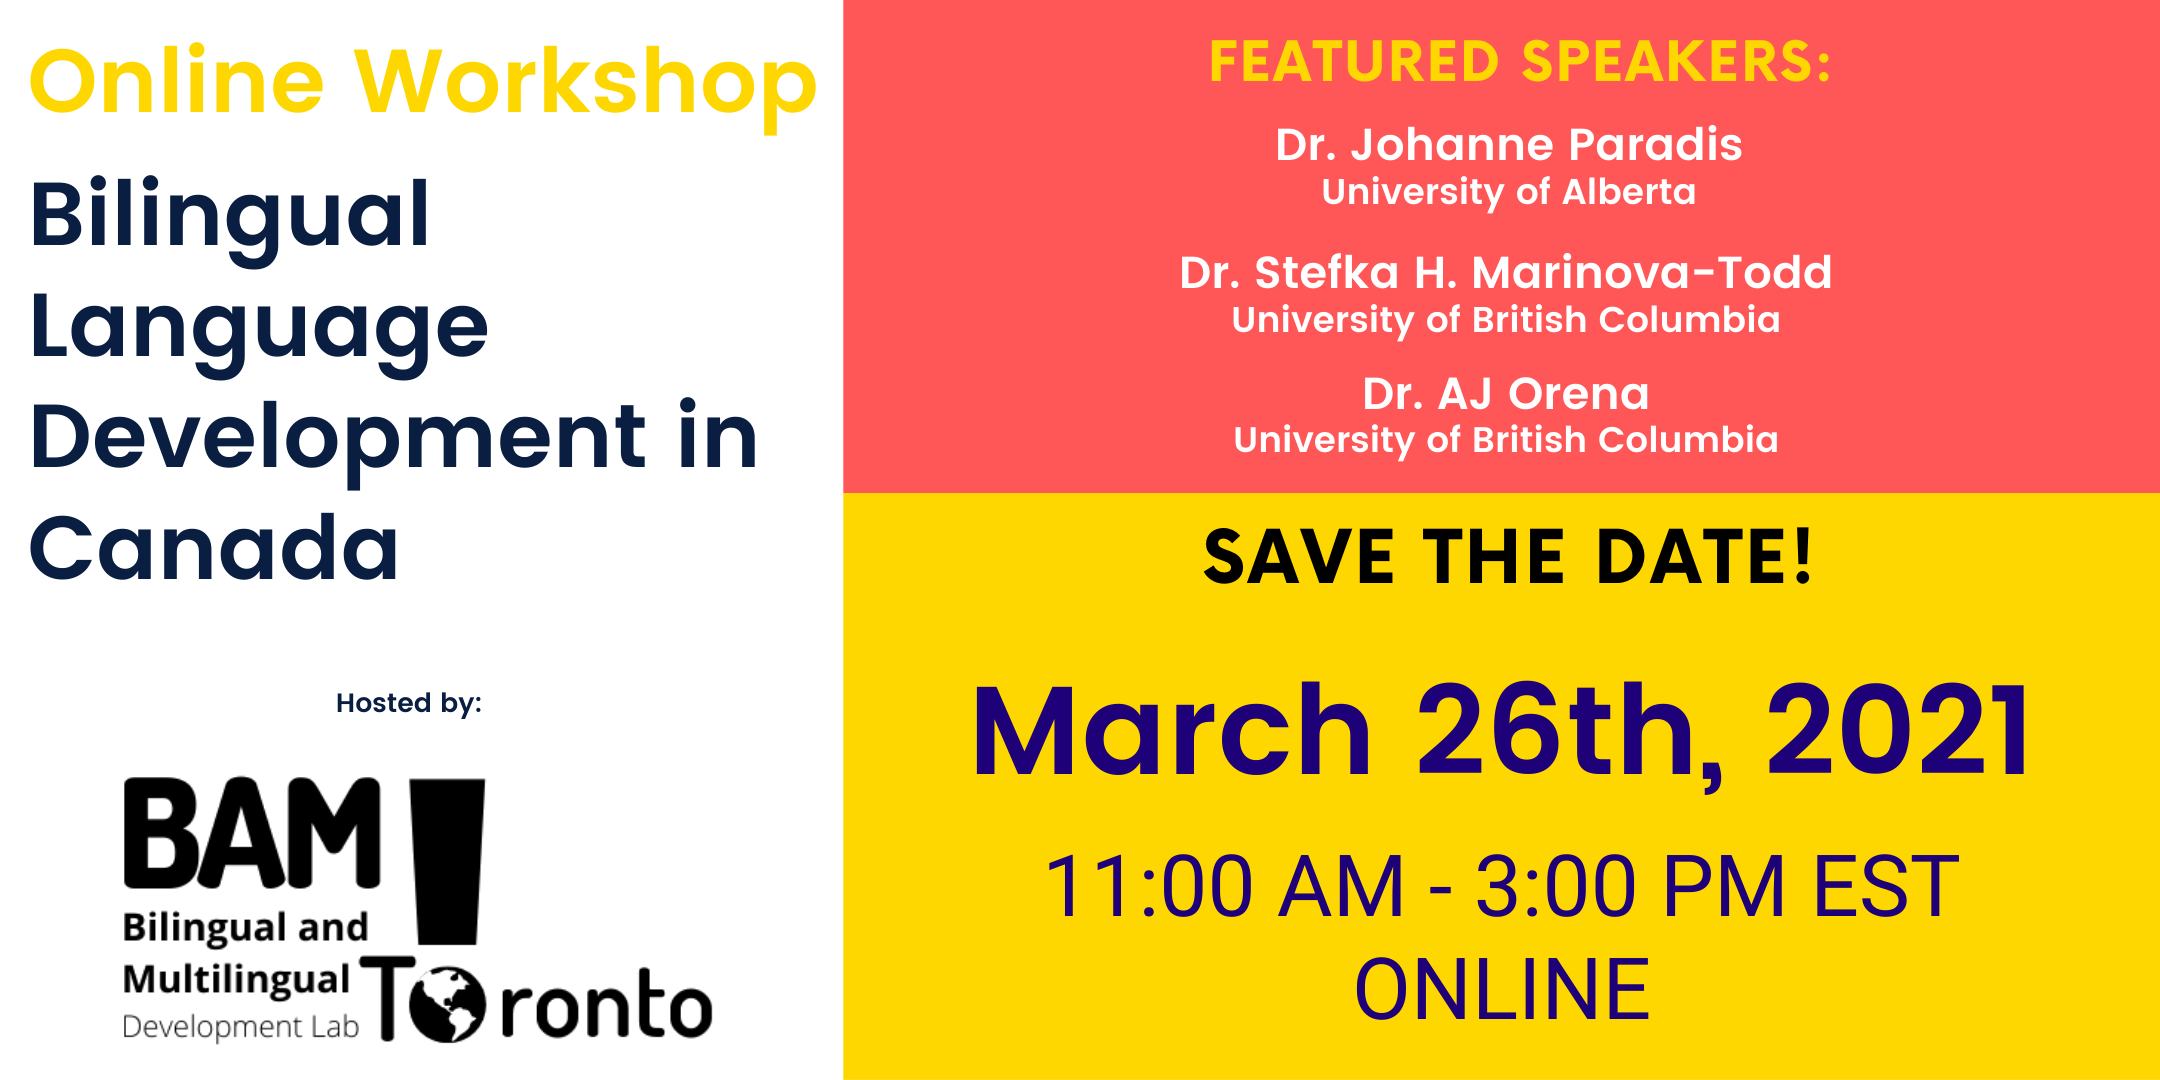 Save the banner for BAM Lab Online Workshop Bilingual Development in Canada featuring Dr. Johanne Paradis, Dr. Stefka Marinova-Todd and Dr. AJ Orena.